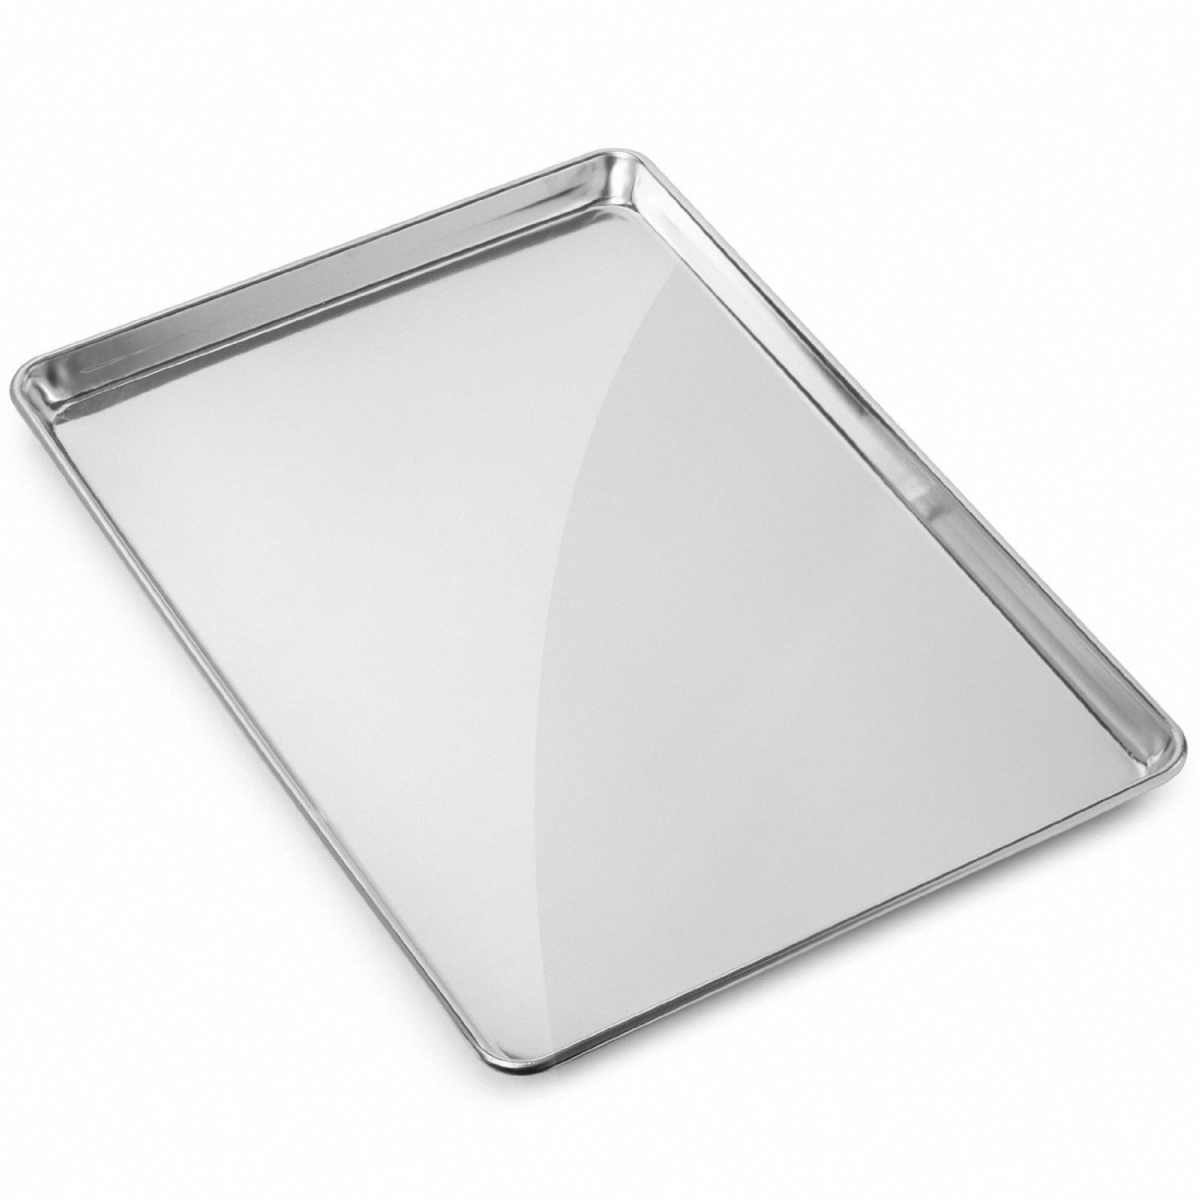 Commercial Baking Sheet